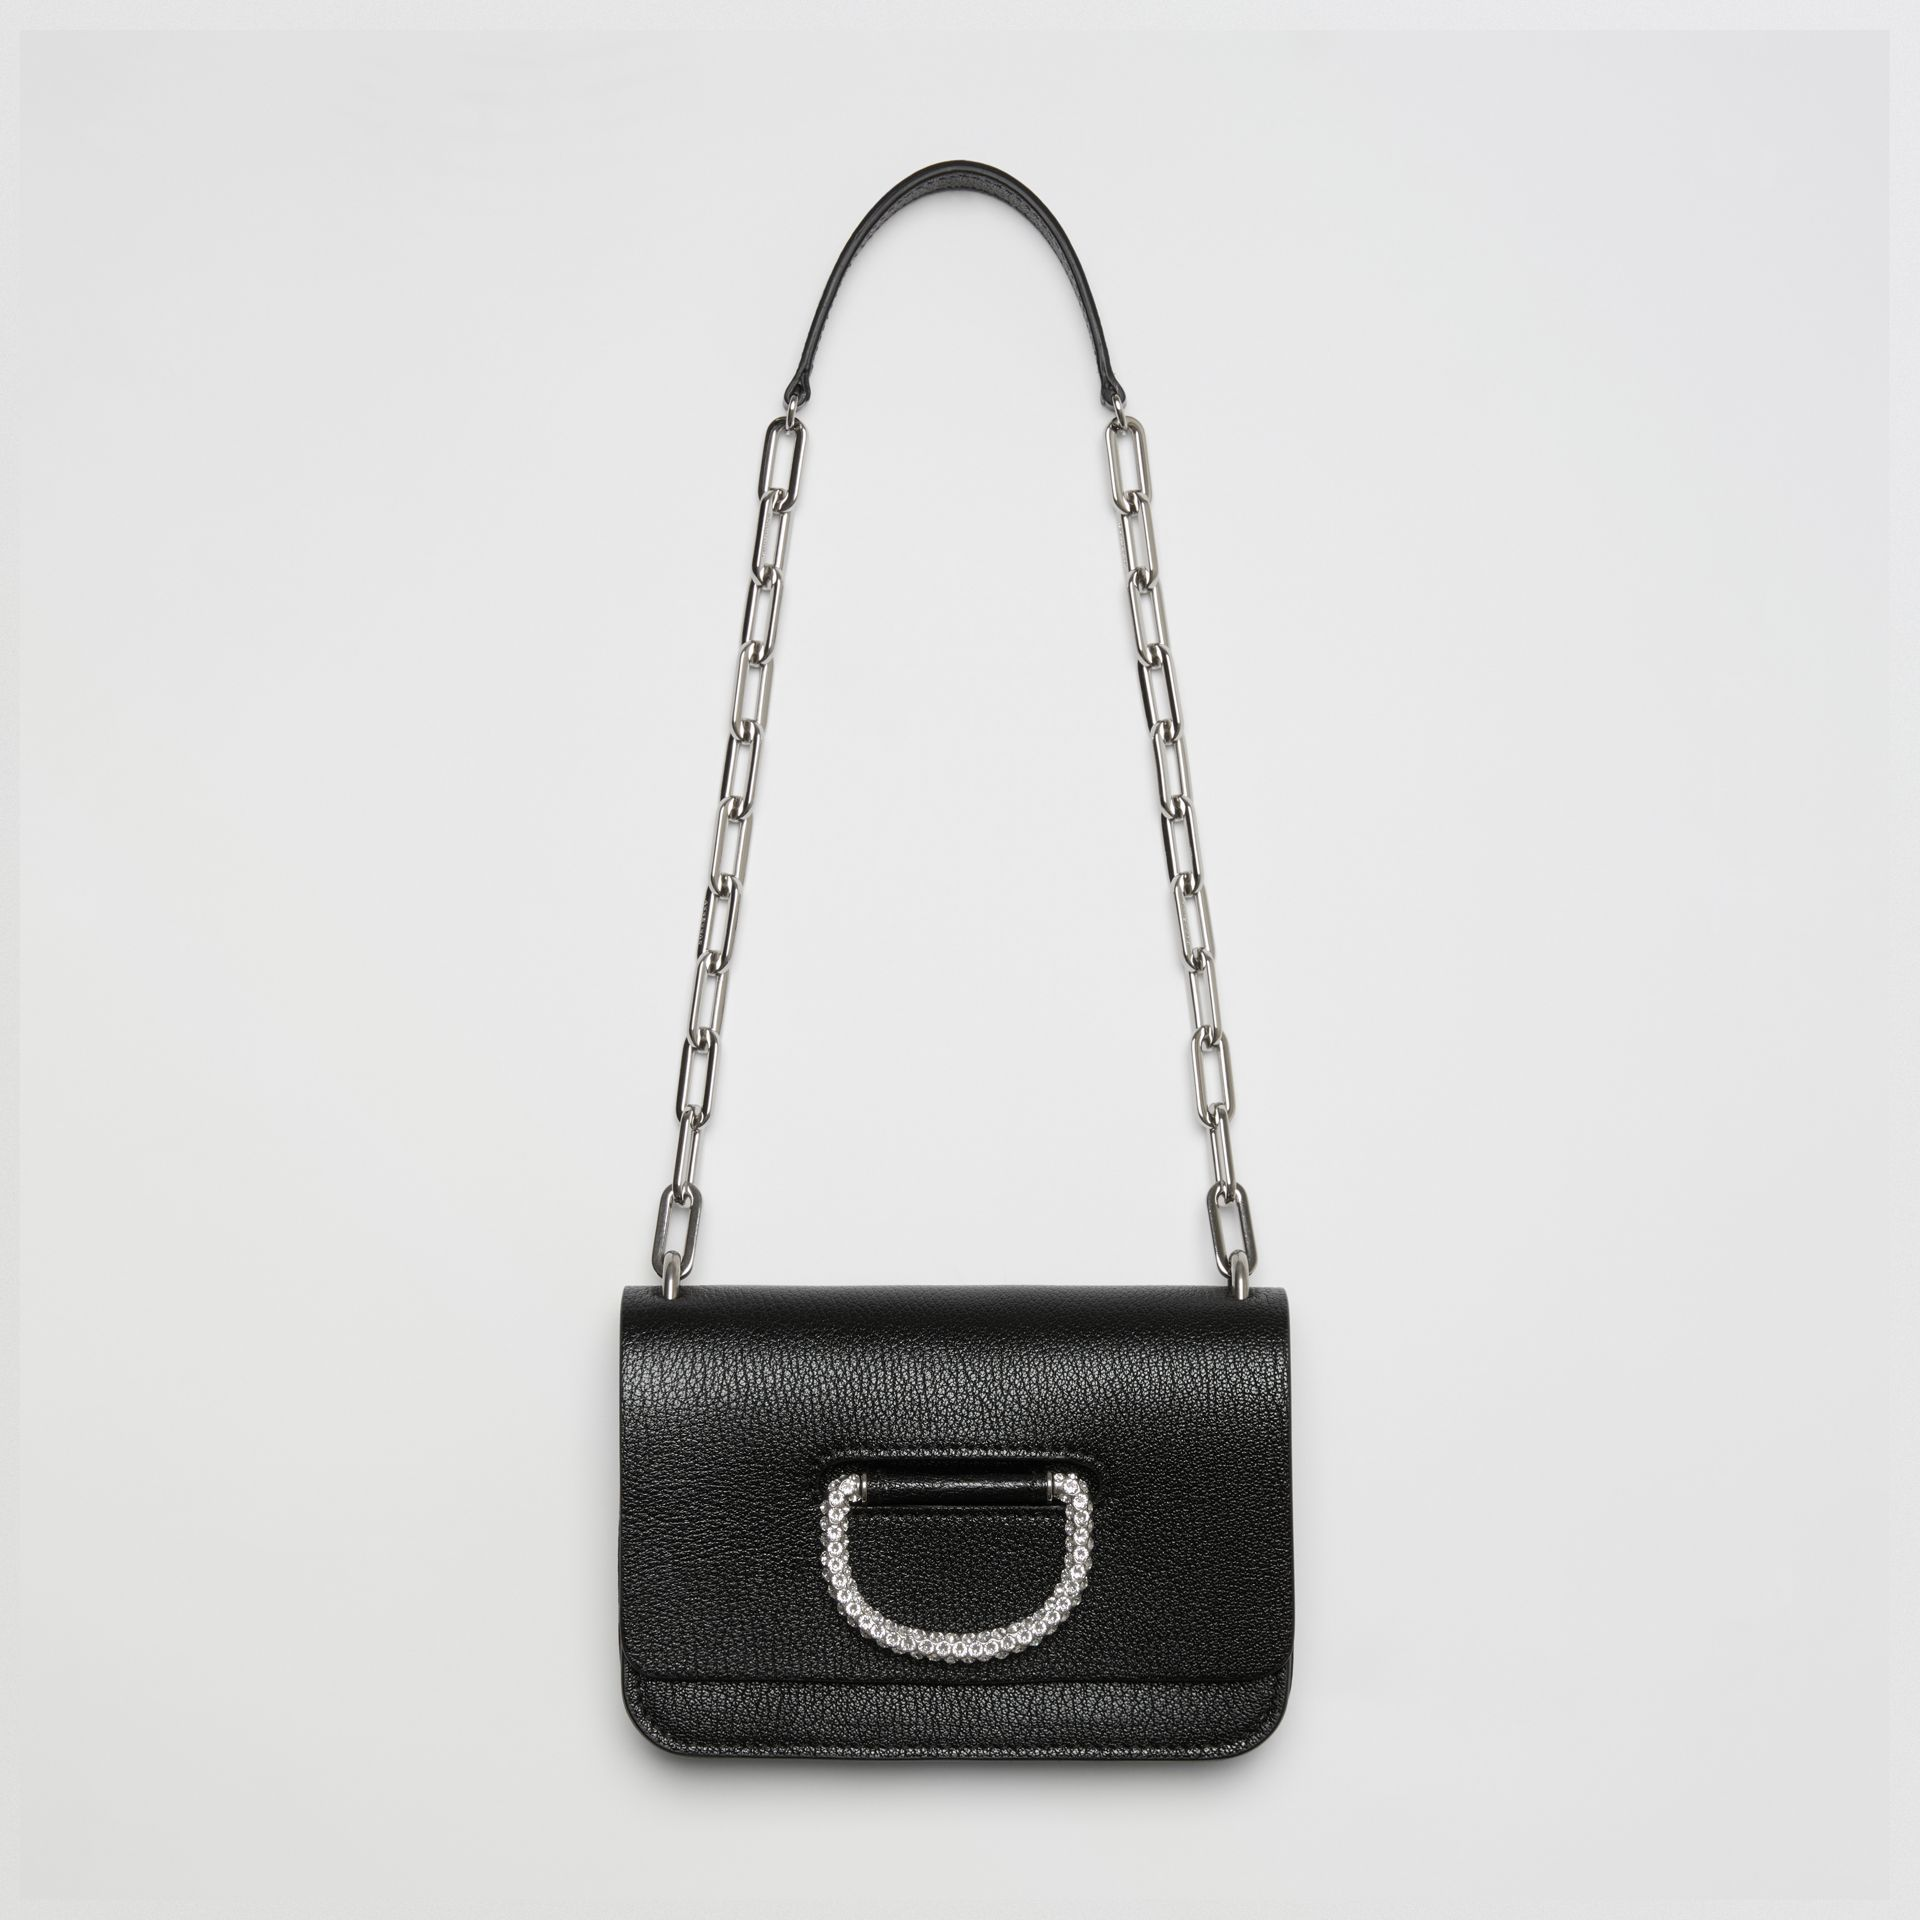 Borsa The D-ring mini in pelle con cristalli (Nero) - Donna | Burberry - immagine della galleria 2